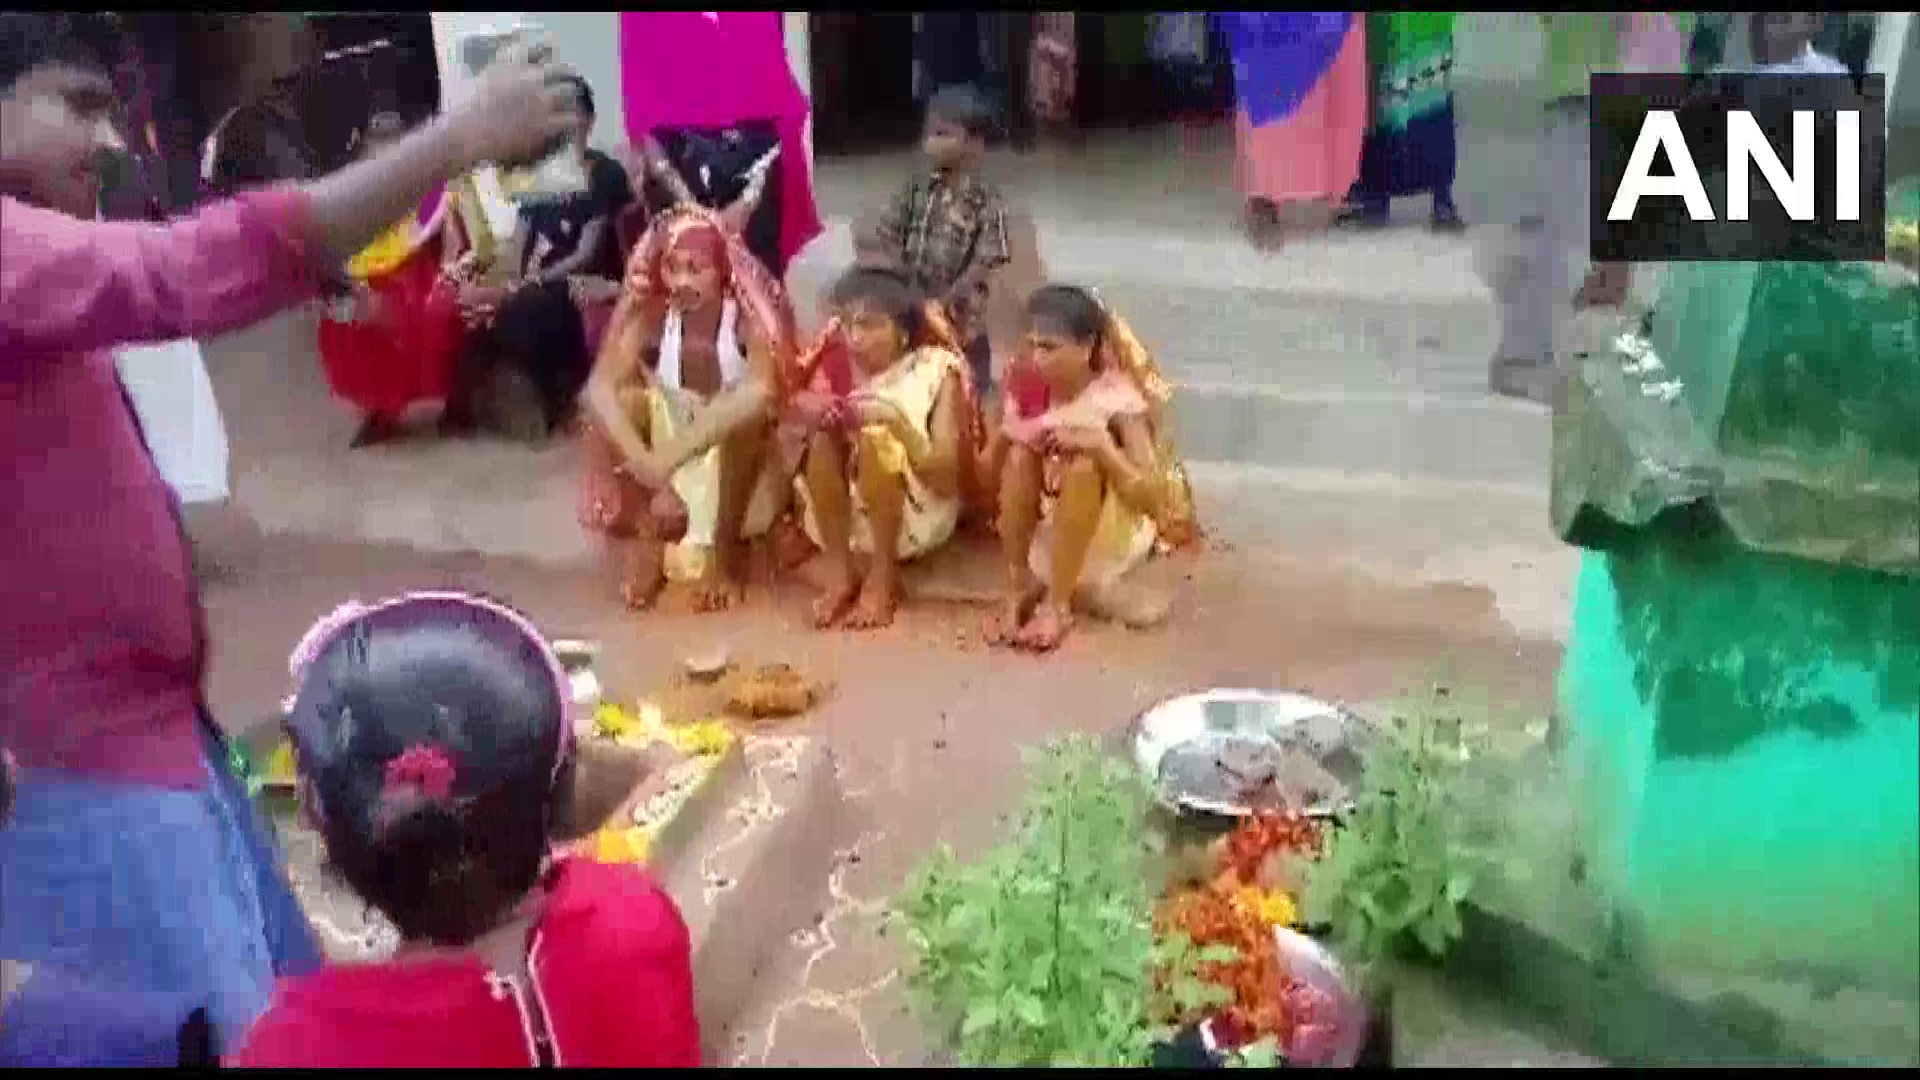 Man Marries two Women Together